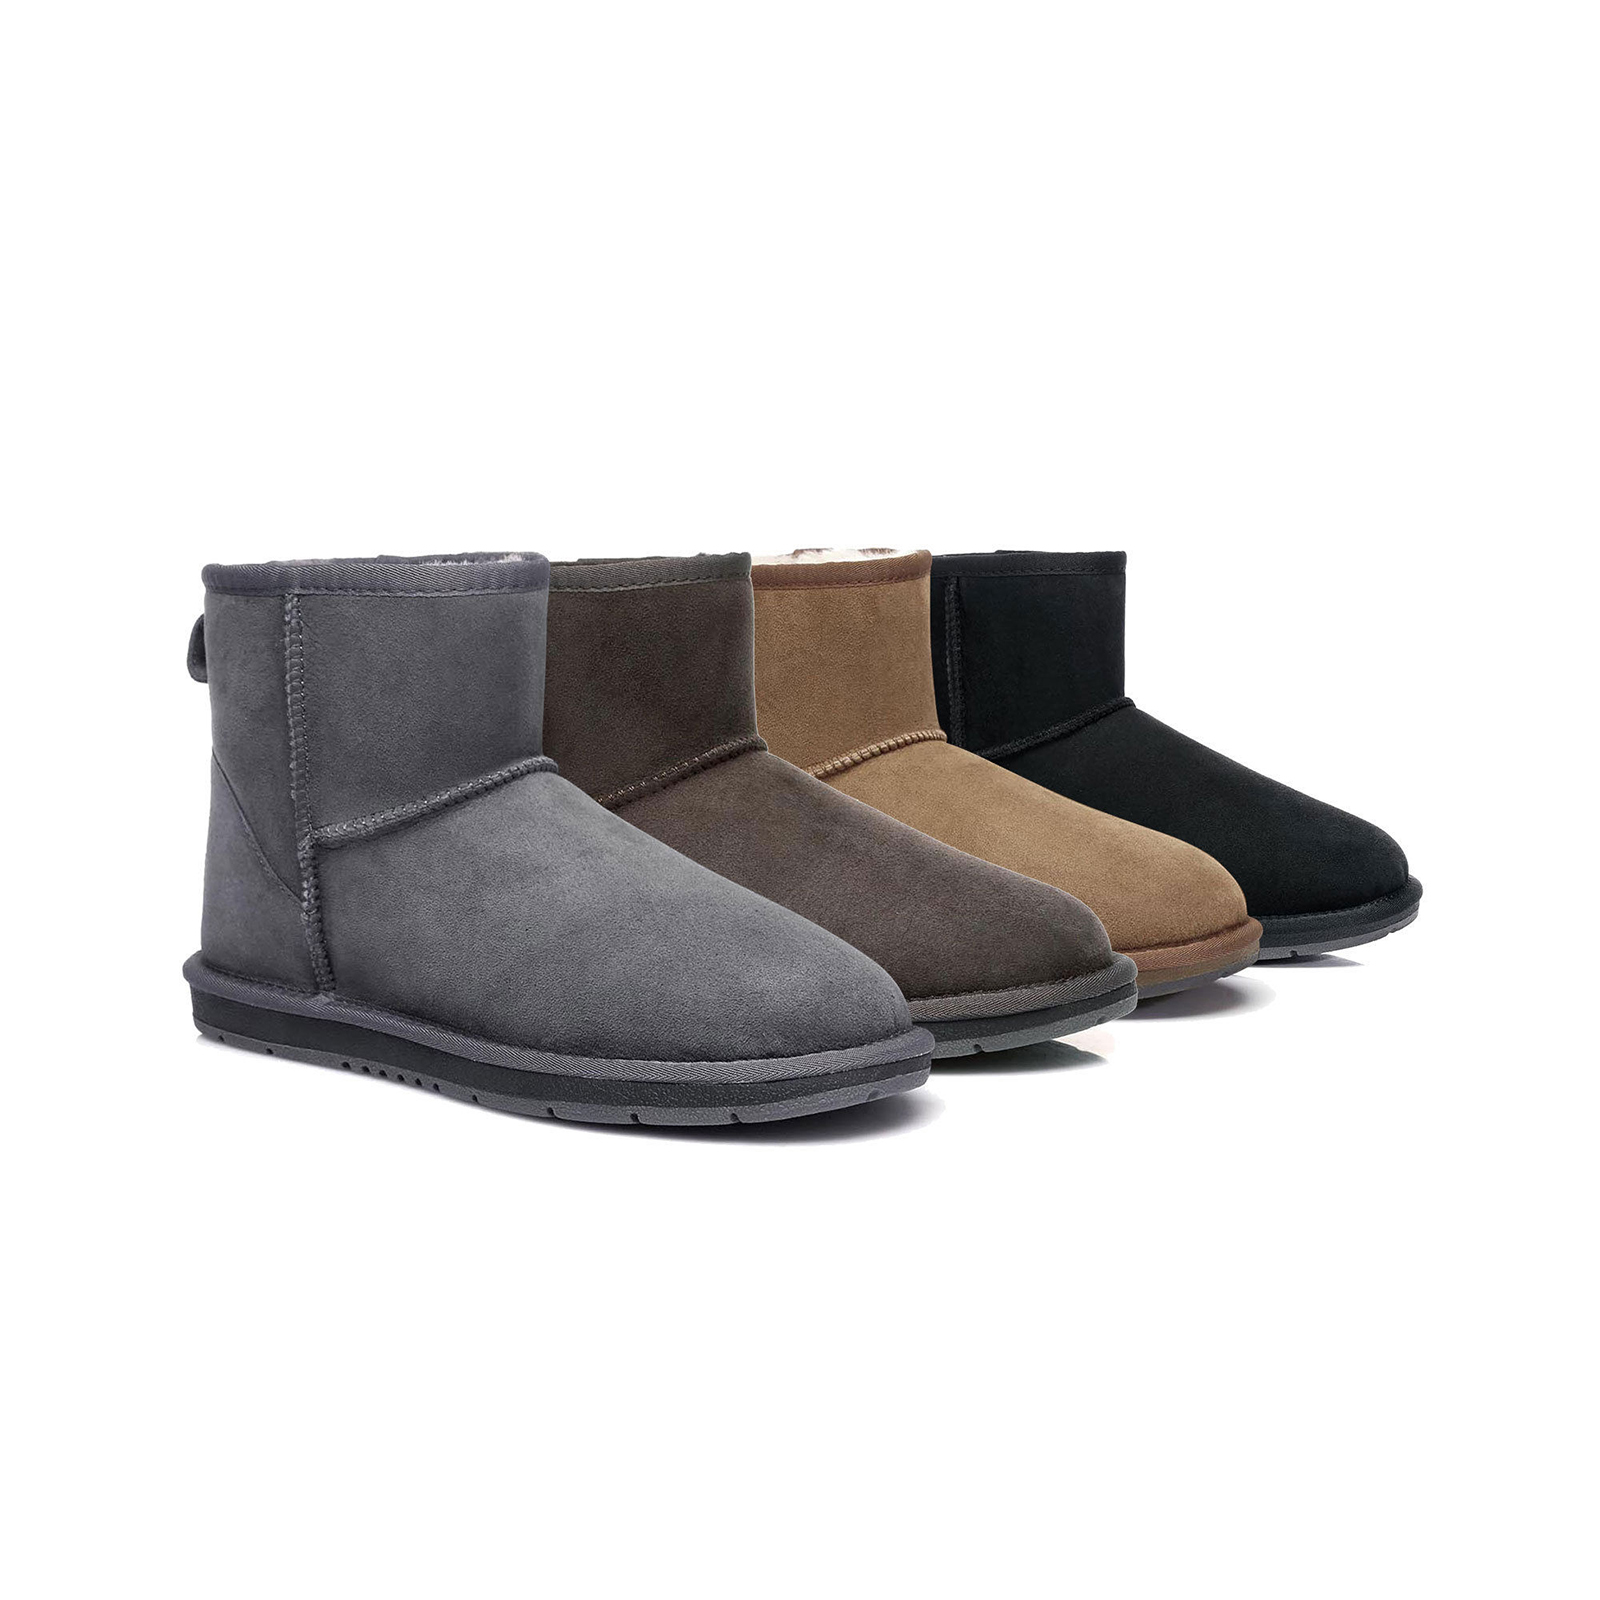 Ugg-Mini-Classic-Sheepskin-Ankle-Boots-Mens-Ladies-